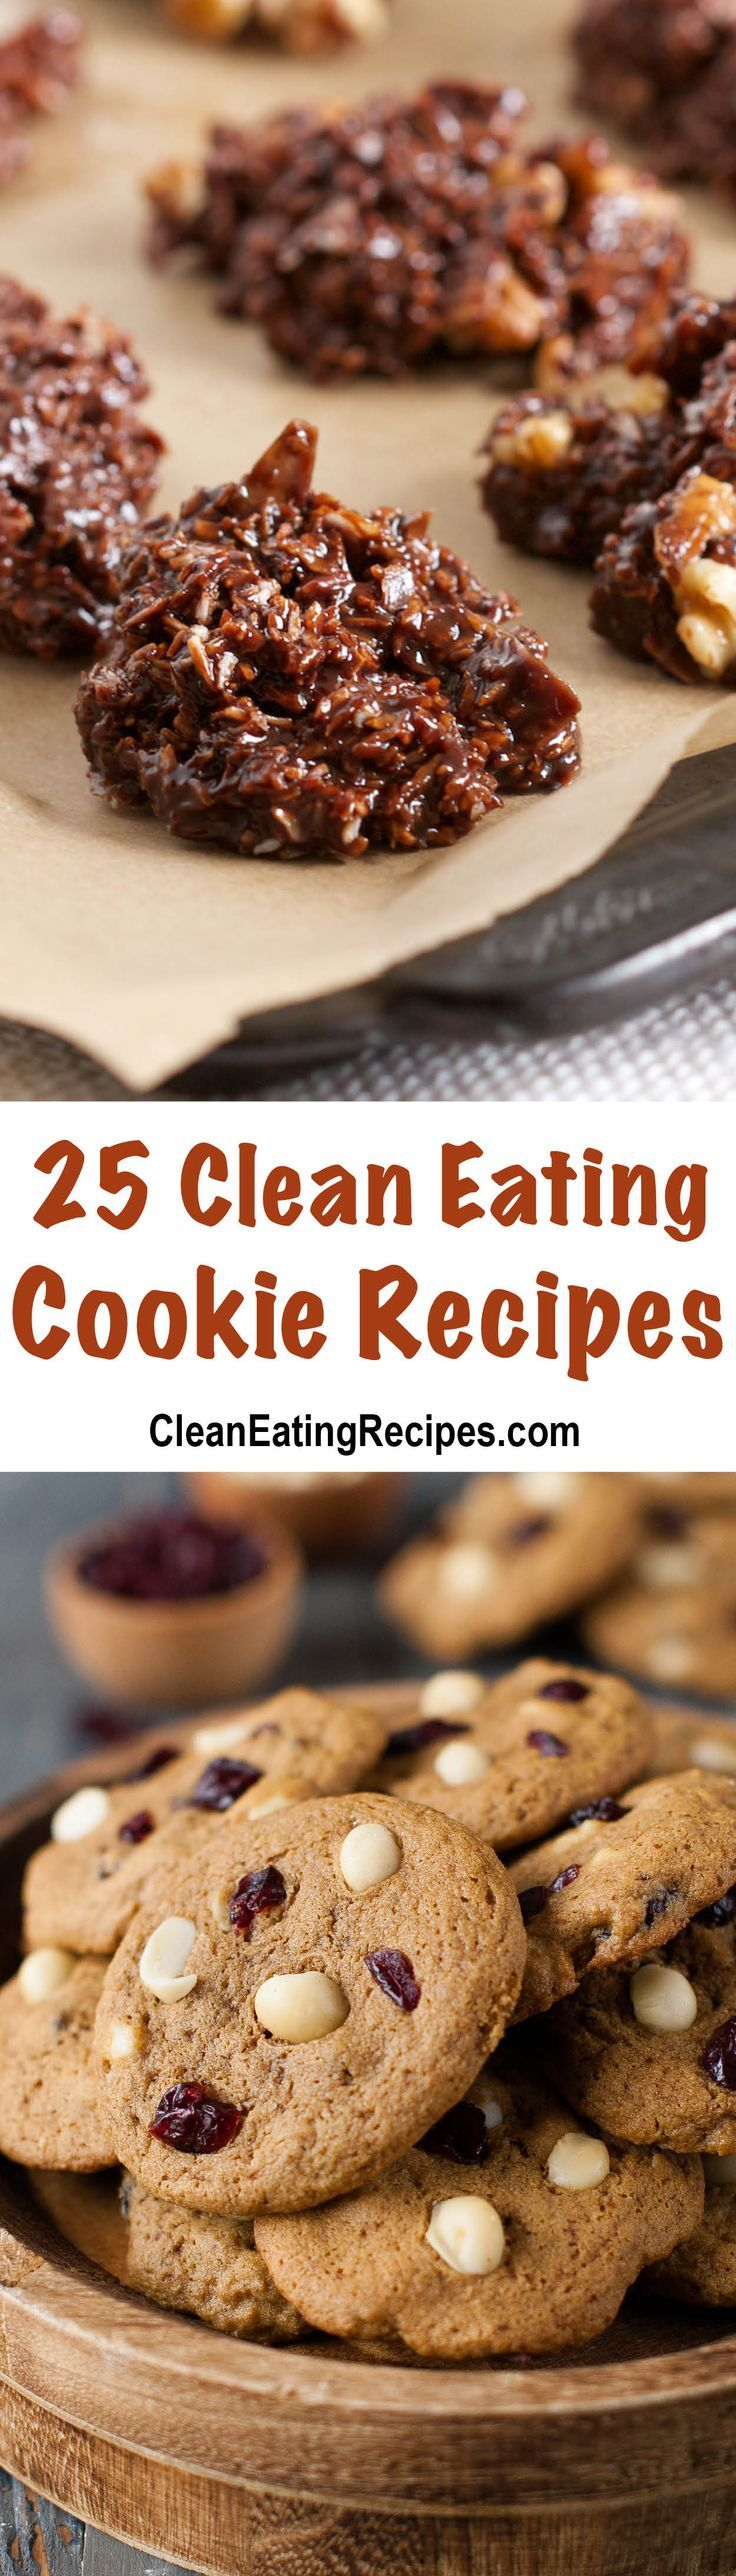 25 Clean Eating Cookie Recipes - all with an image an a link to get the recipe.